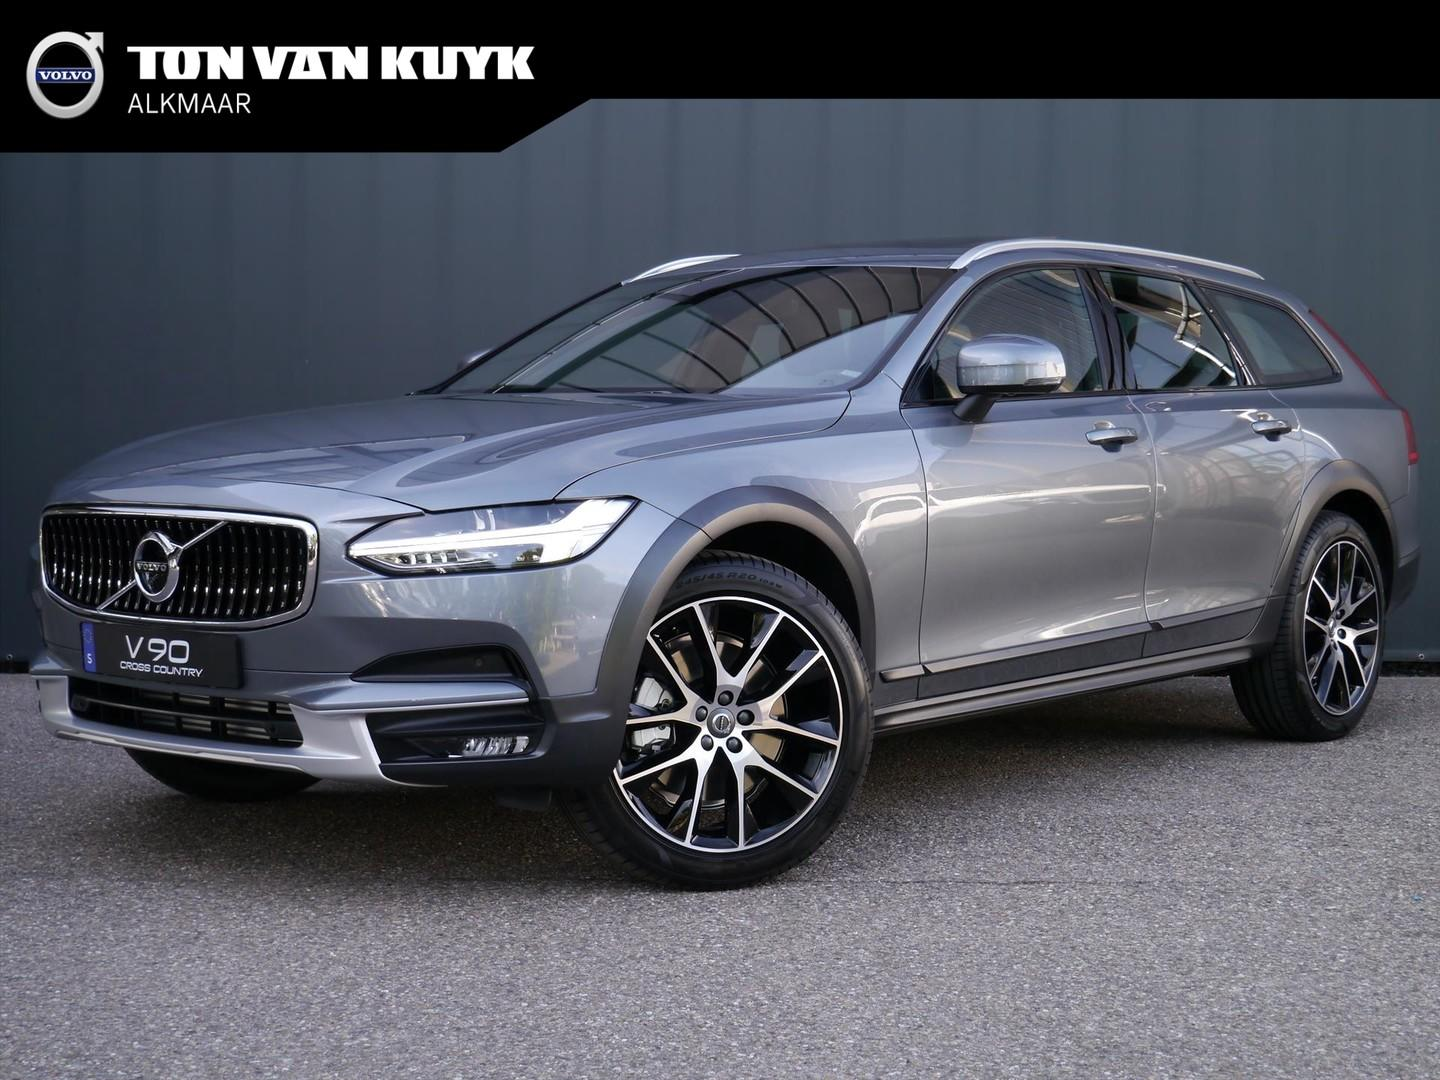 Volvo V90 cross country Pro t5 250pk automaat awd / luxury line / inscription line / scandinavian line